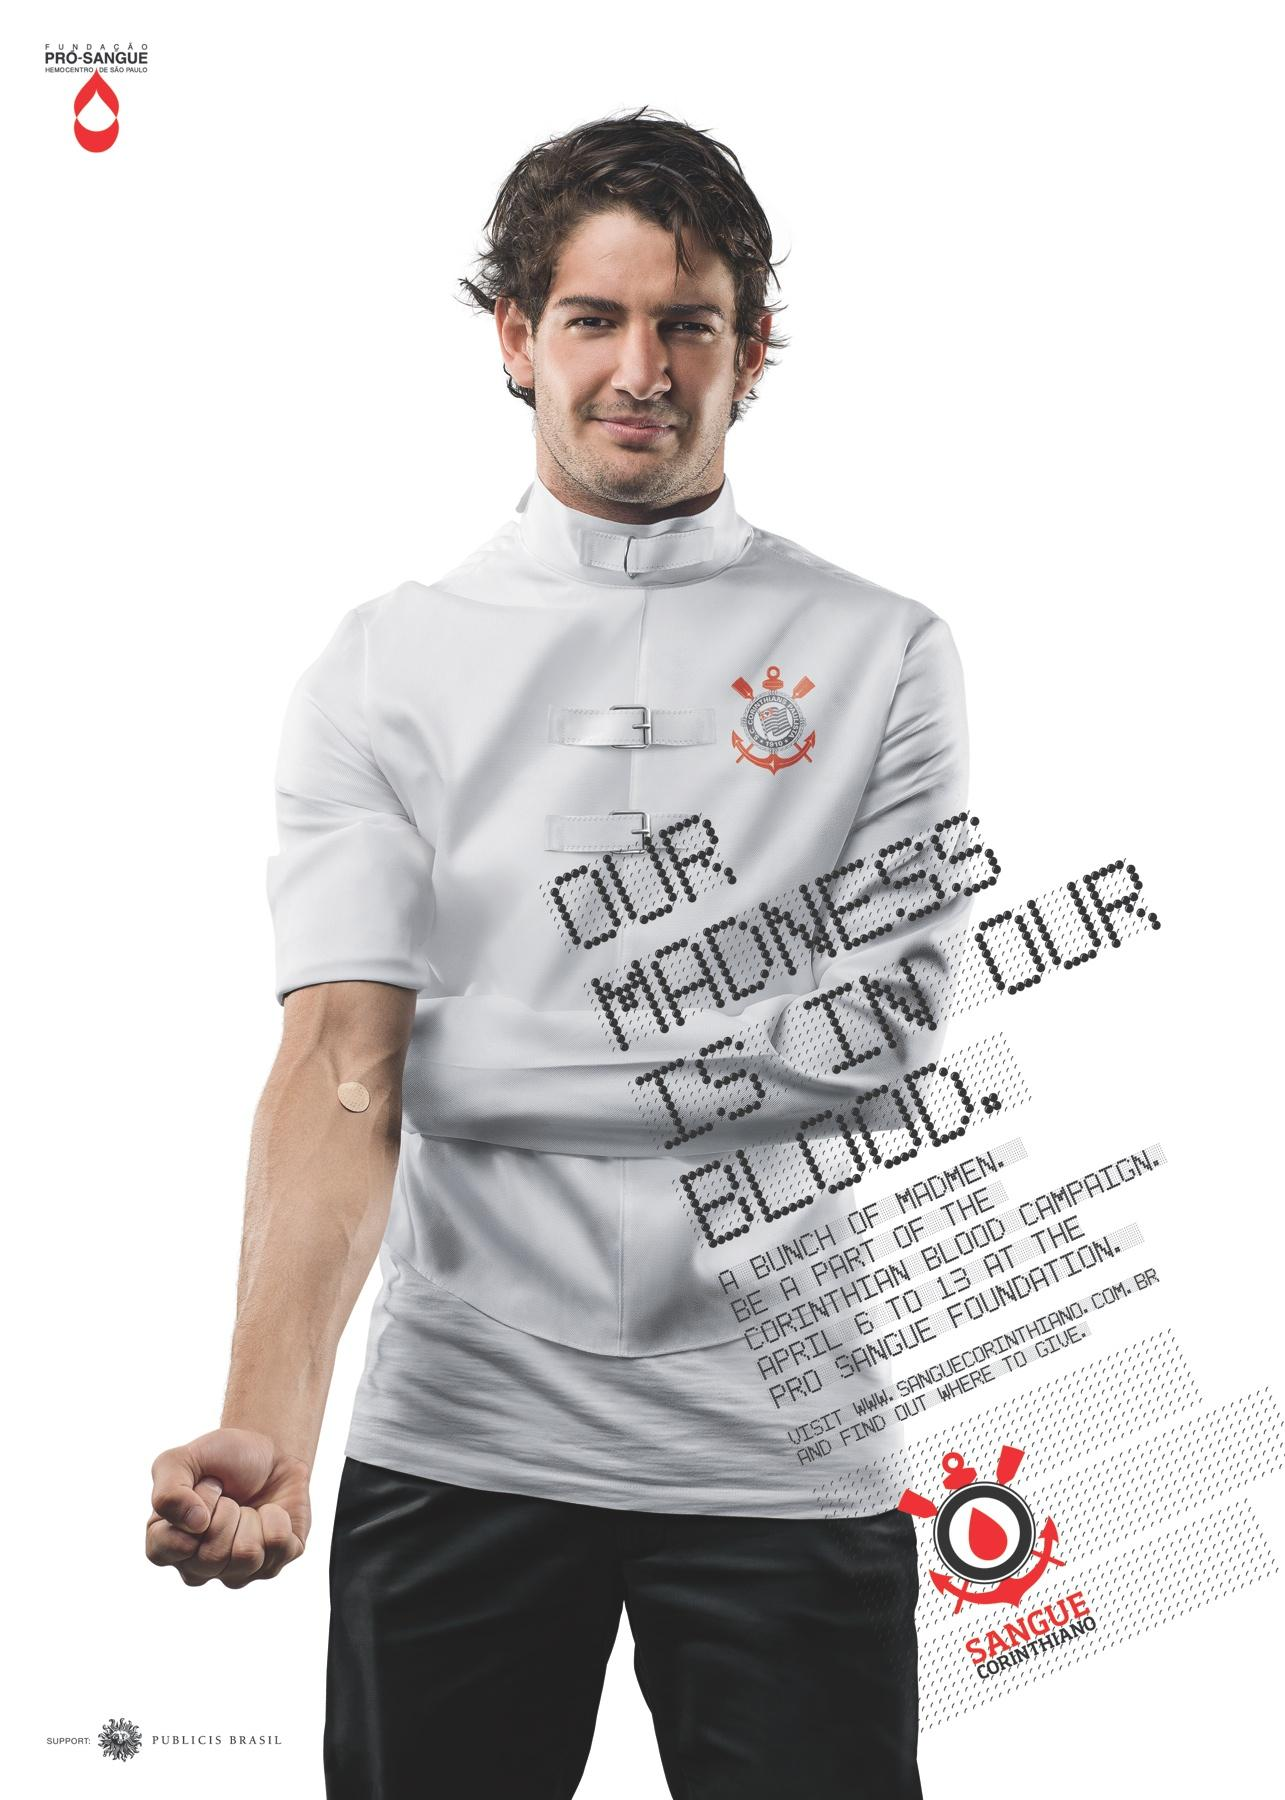 Sangue Corinthiano Print Ad -  Our madness is in our blood, Pato